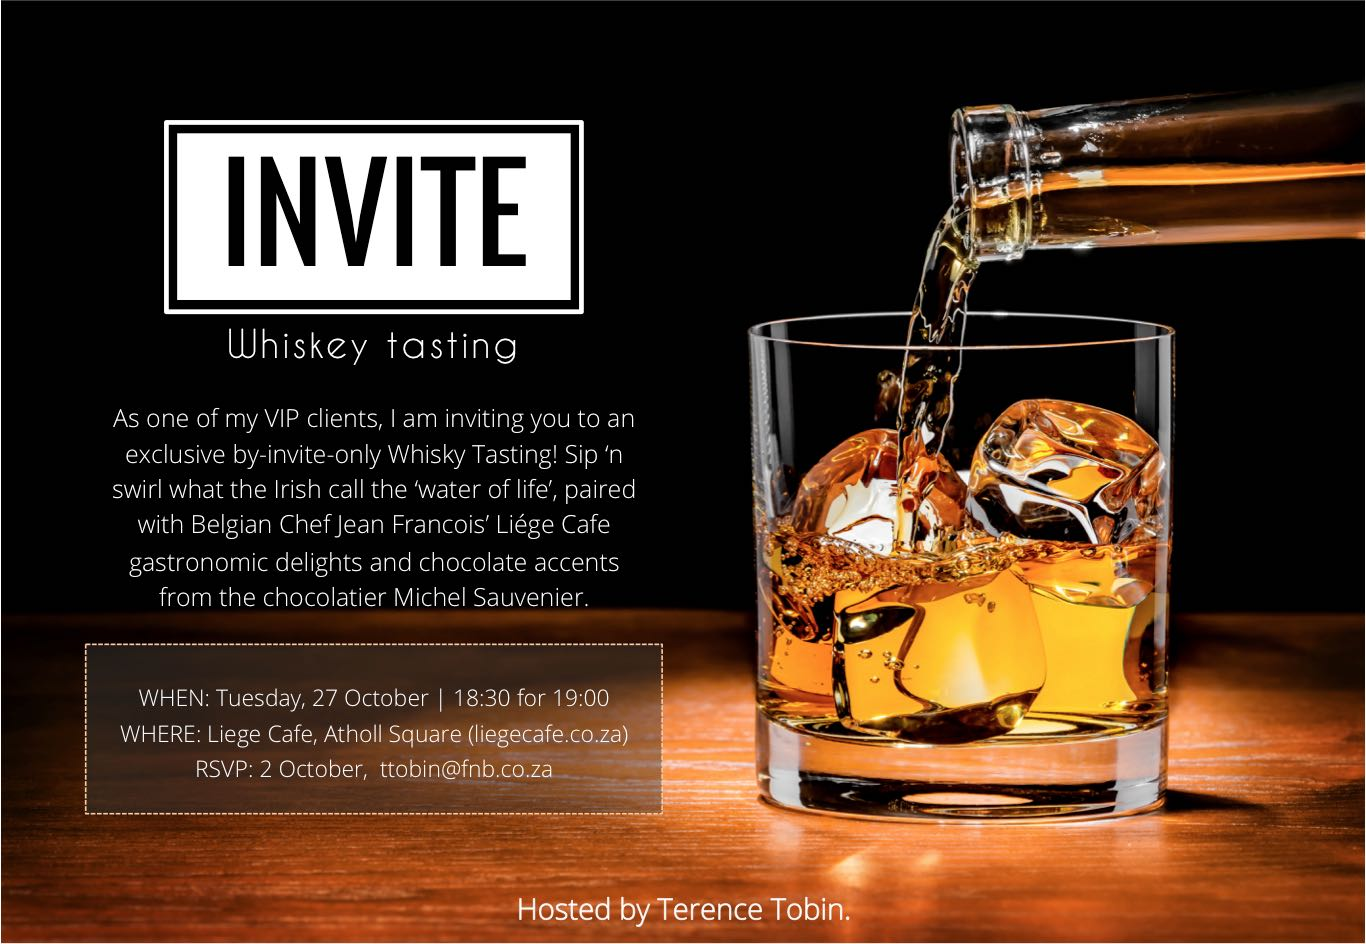 Whiskey Tasting Invite 2 Rainer Boshoff